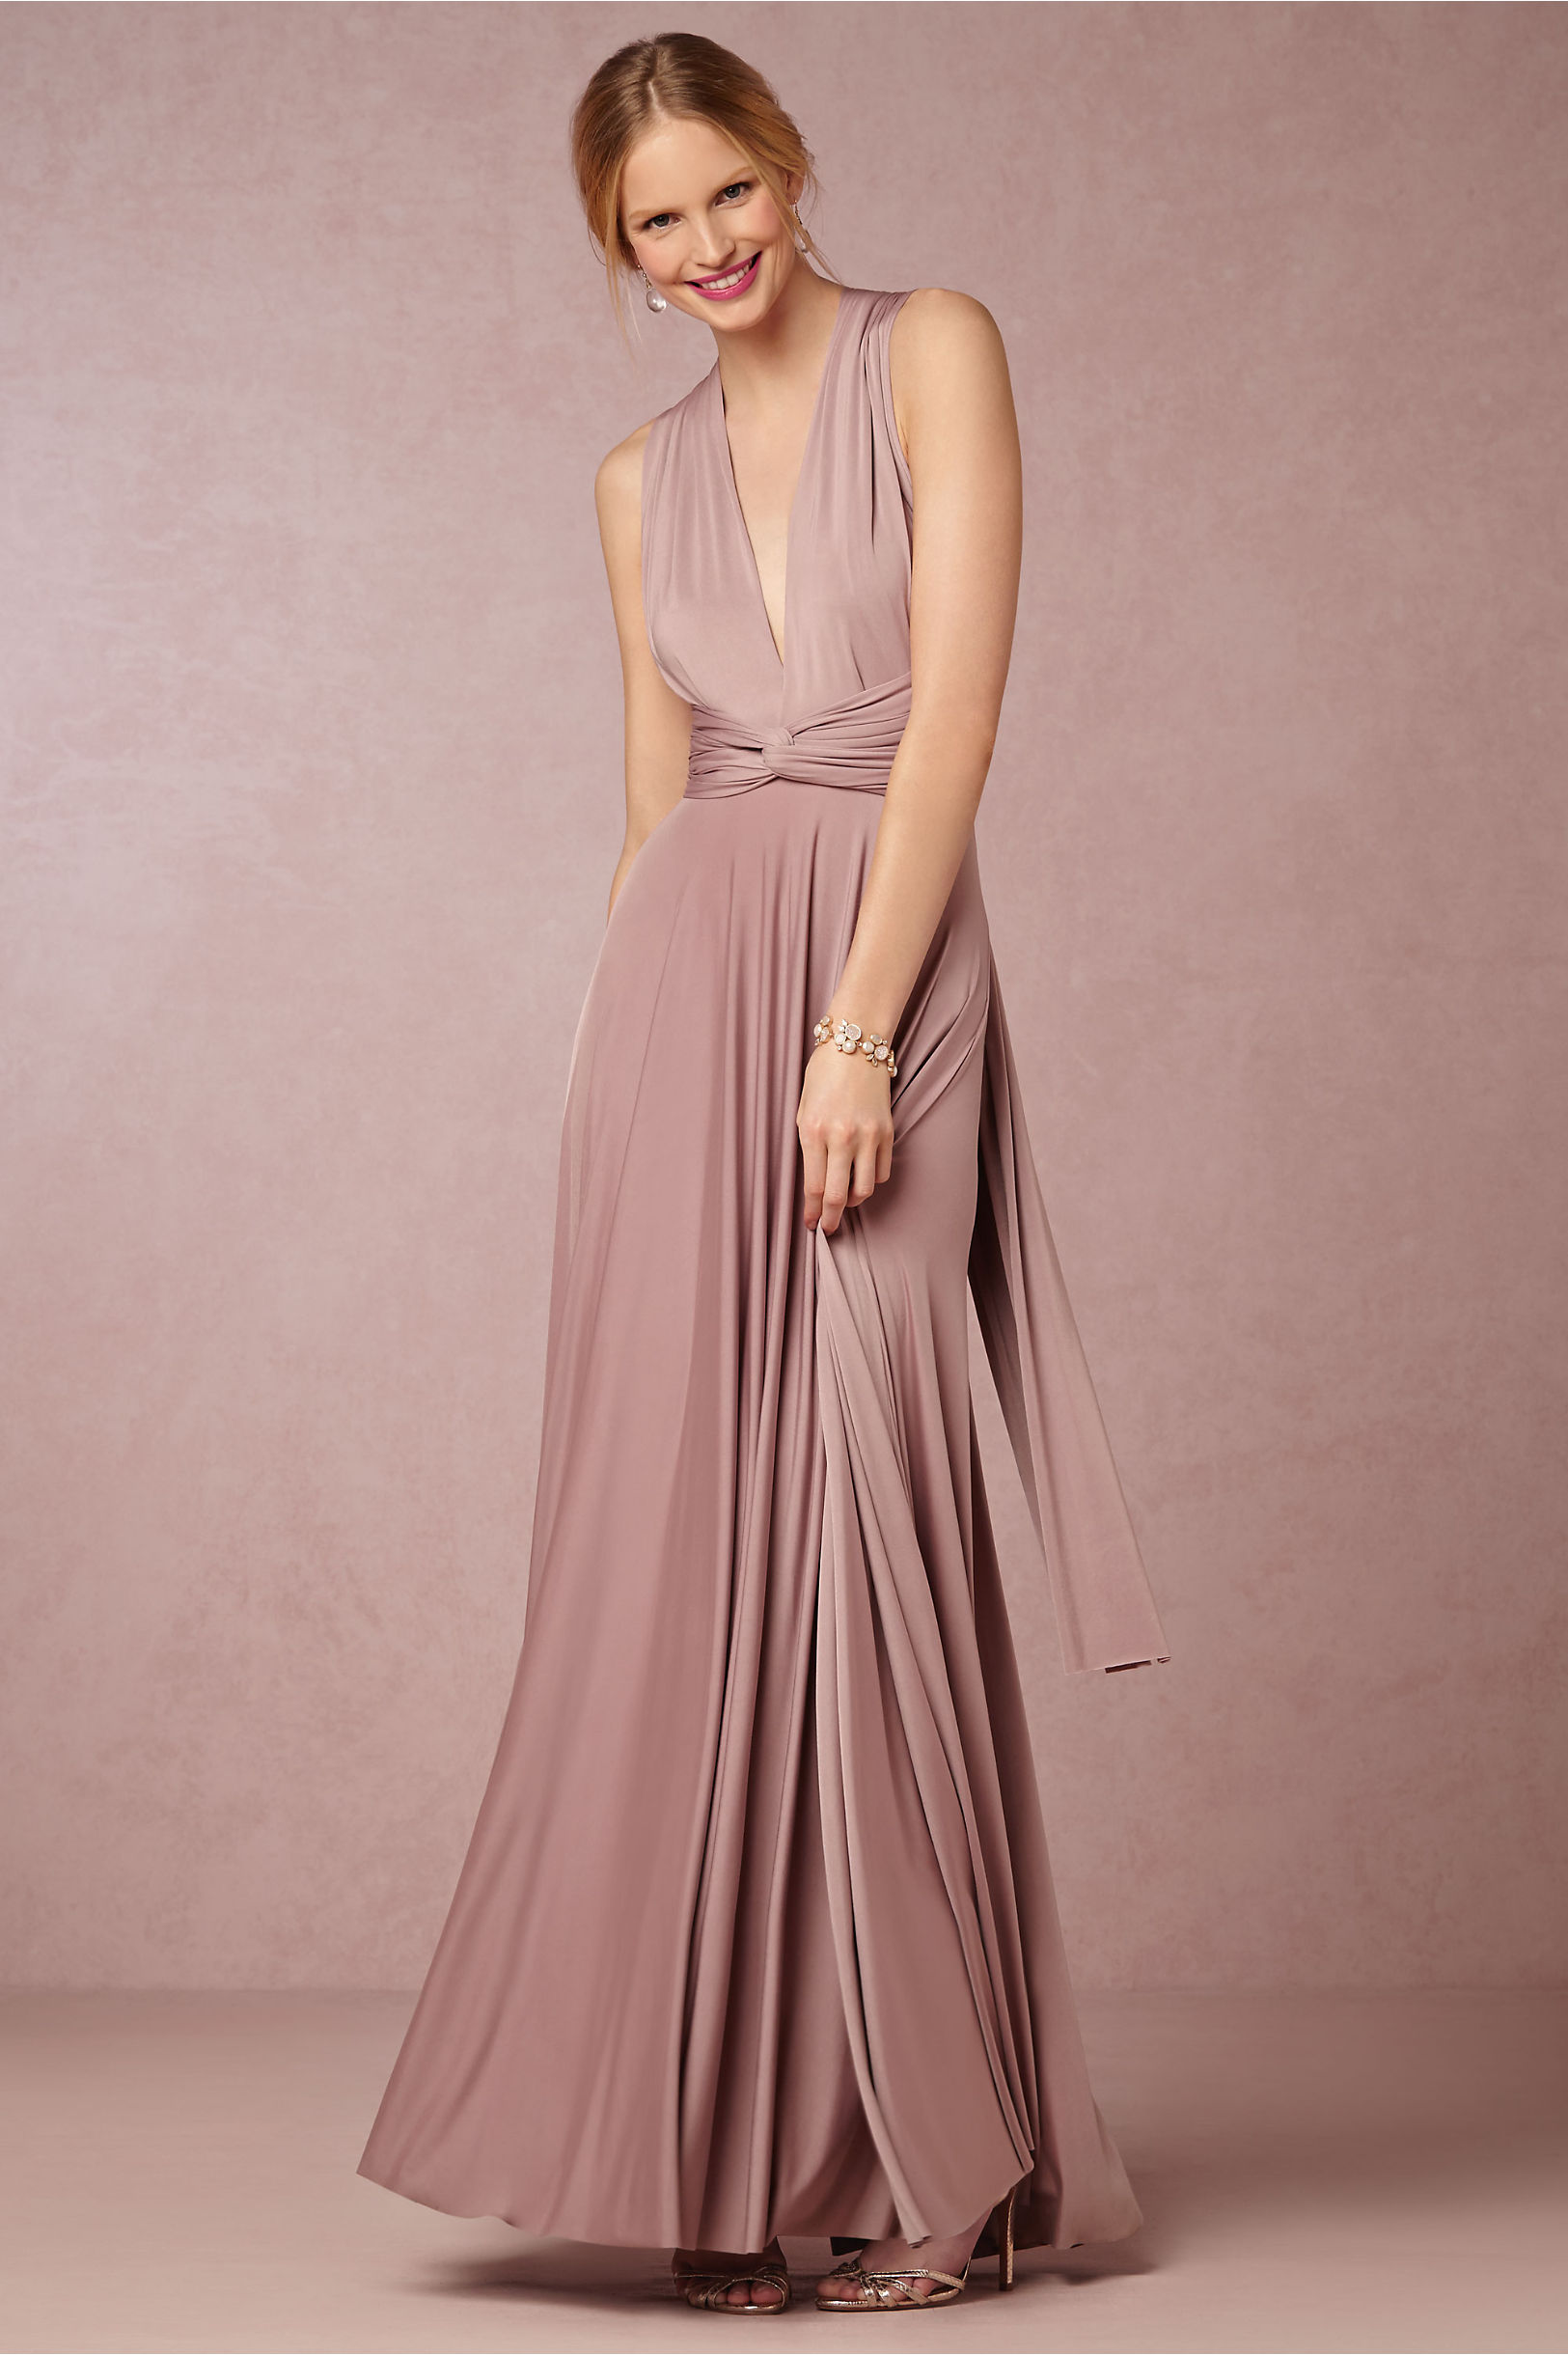 Ginger Convertible Maxi Dress in Bridal Party | BHLDN